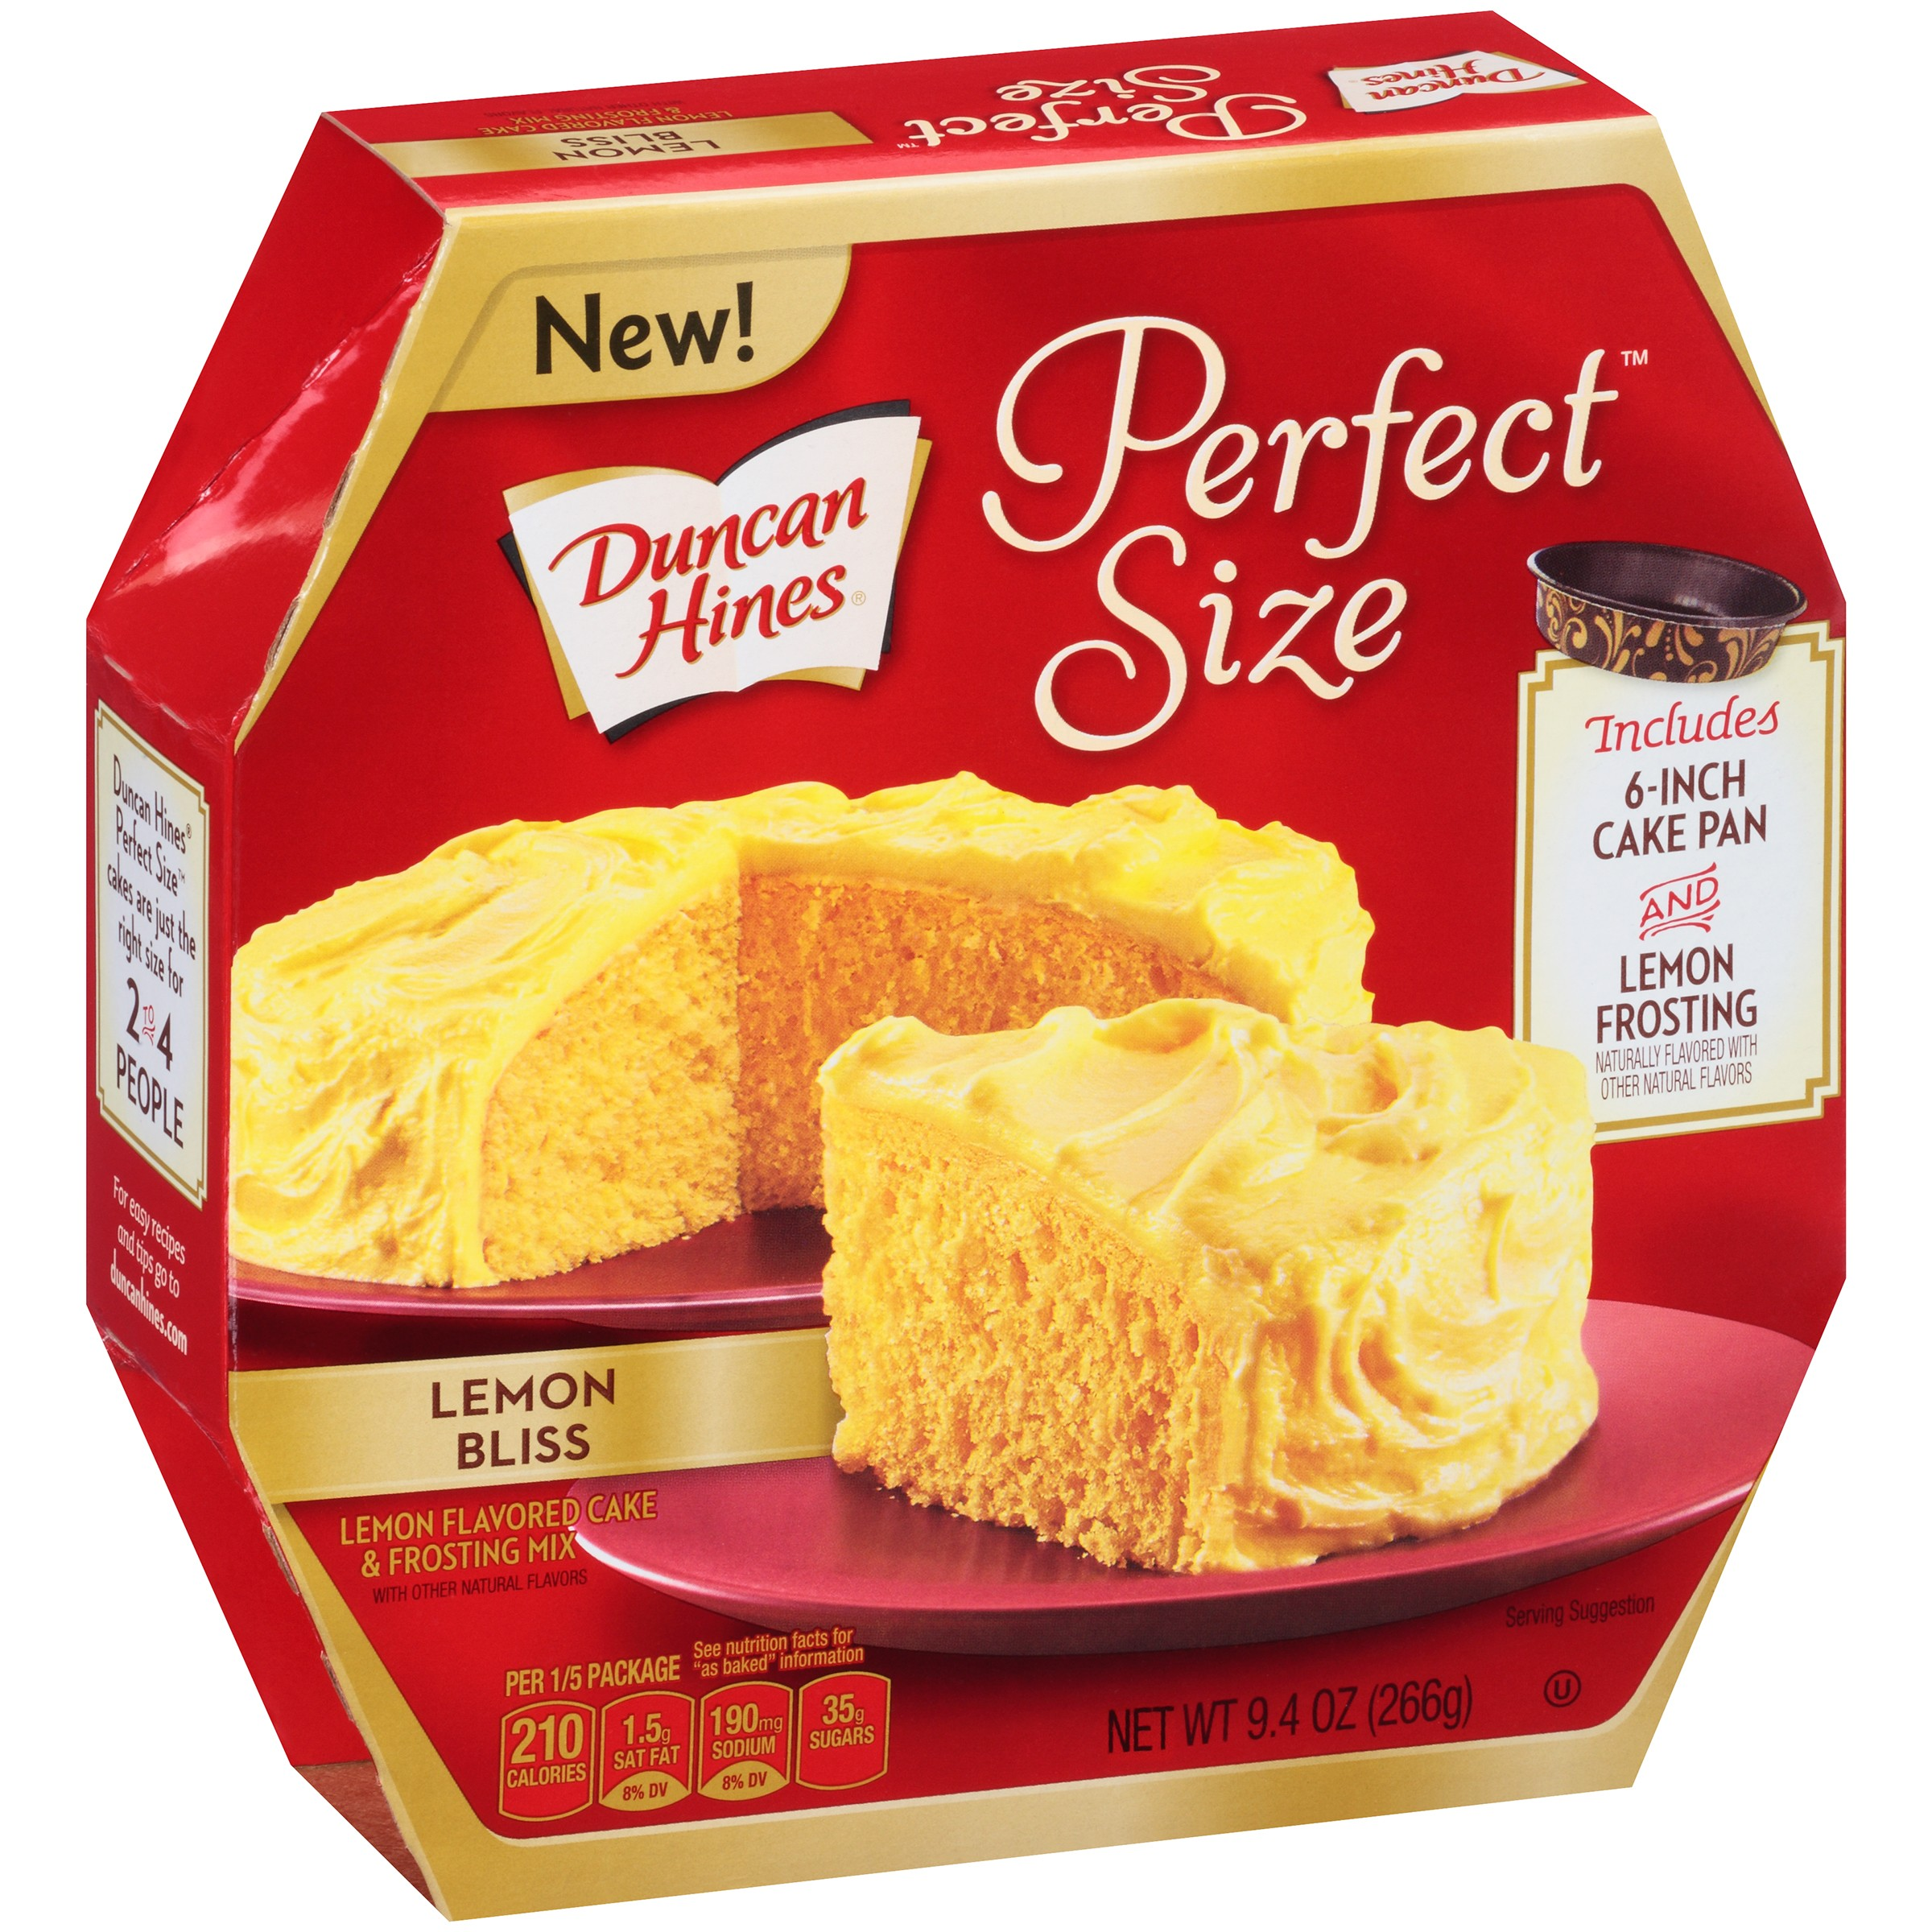 Duncan Hines Perfect Size Lemon Cake & Frosting Mix Lemon Bliss, 9.4 OZ by Pinnacle Foods Group LLC